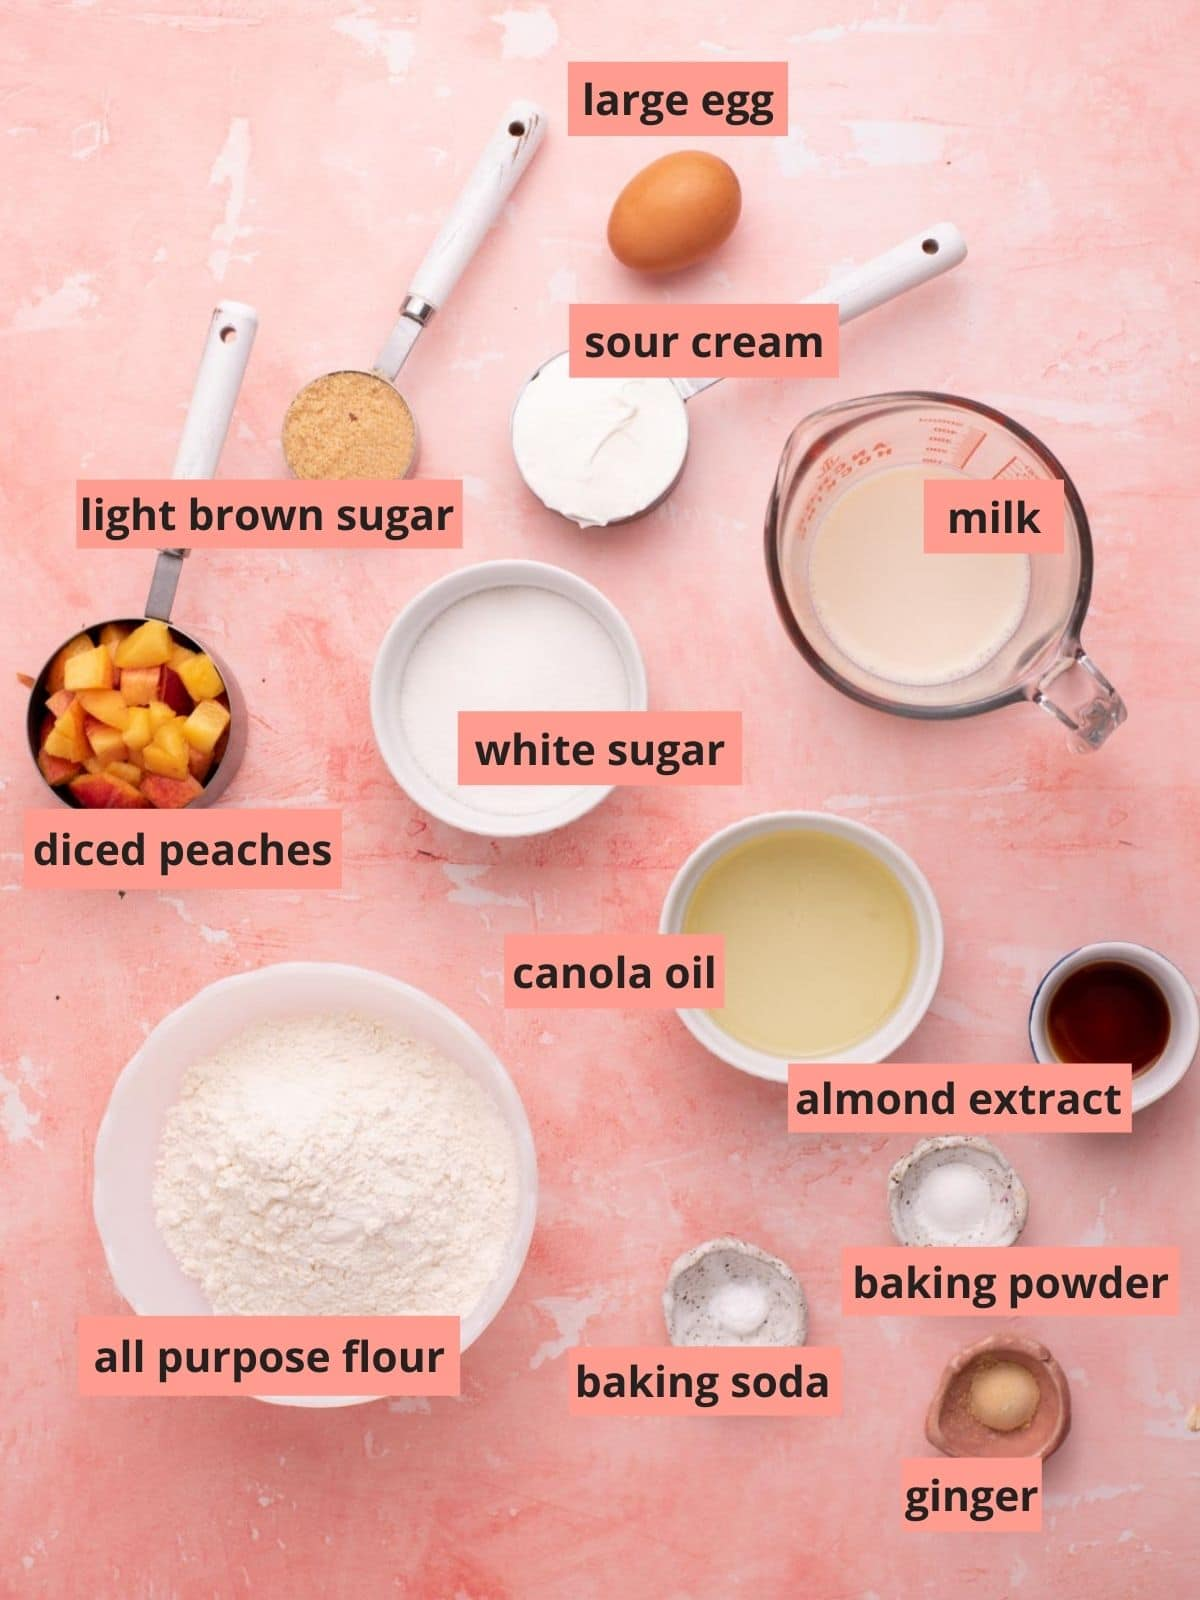 Labeled ingredients used to make peach muffins